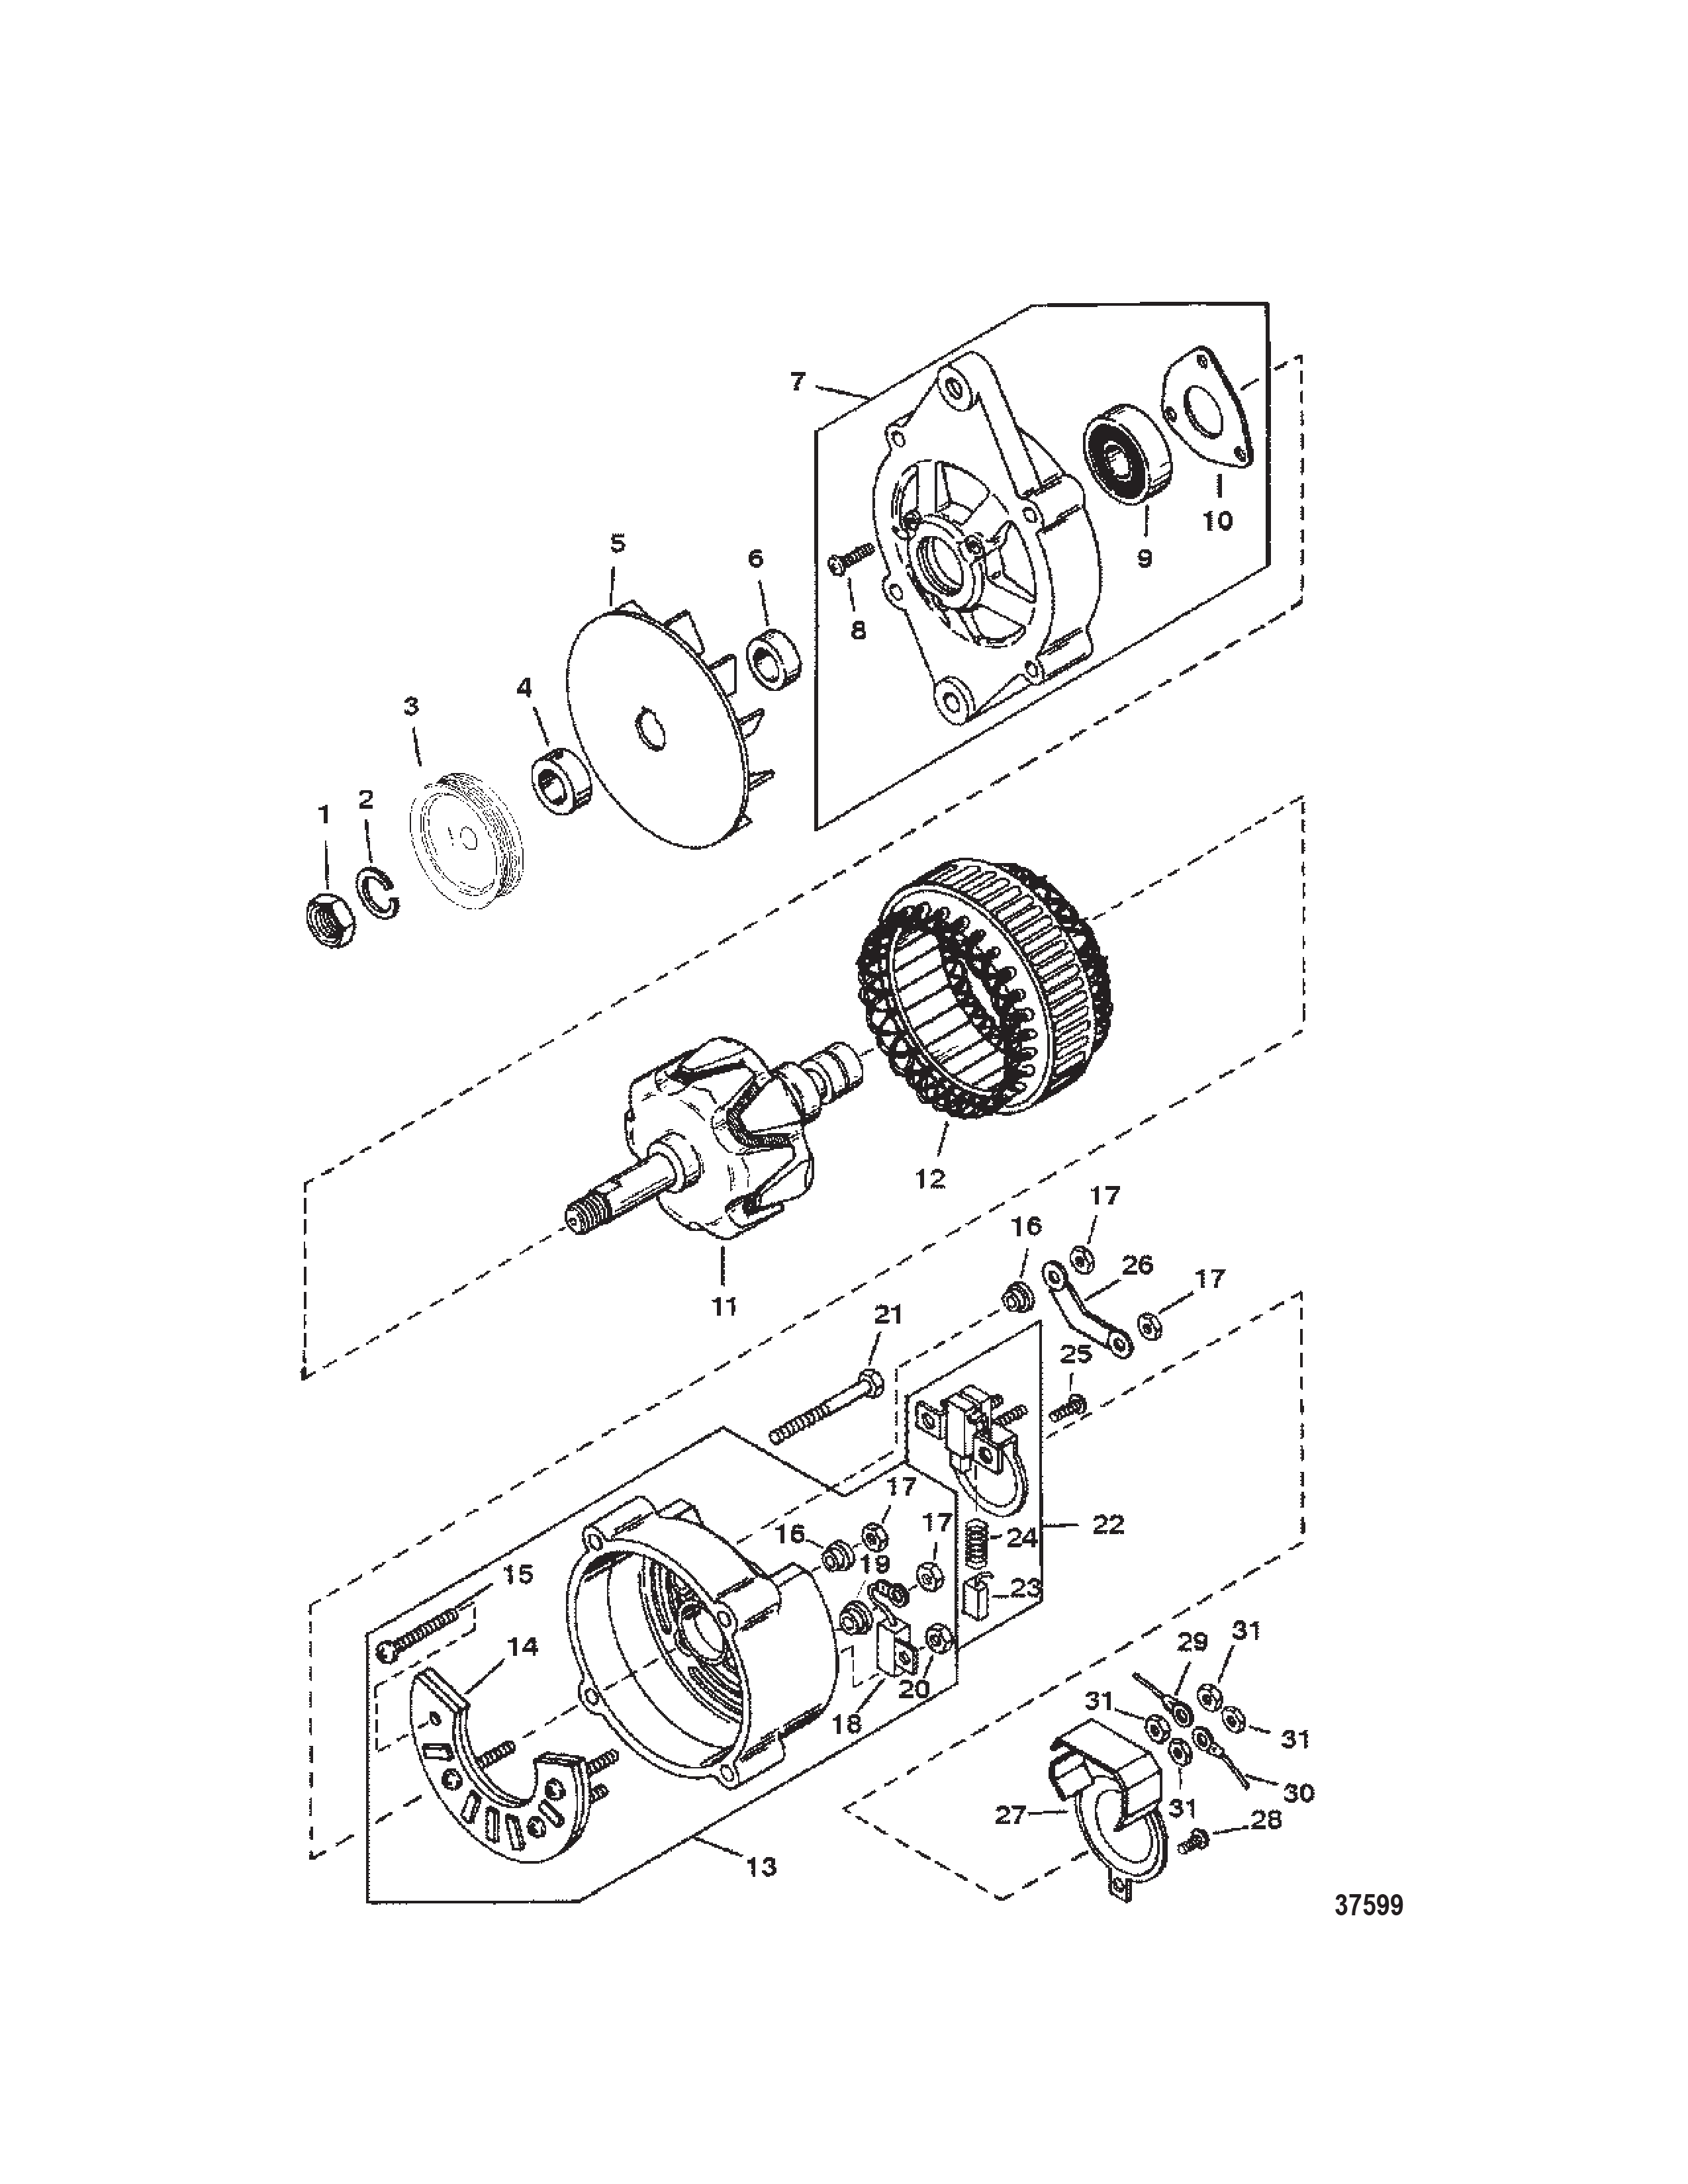 Alternator Wiring Diagram Chevy 2 Cid 1997